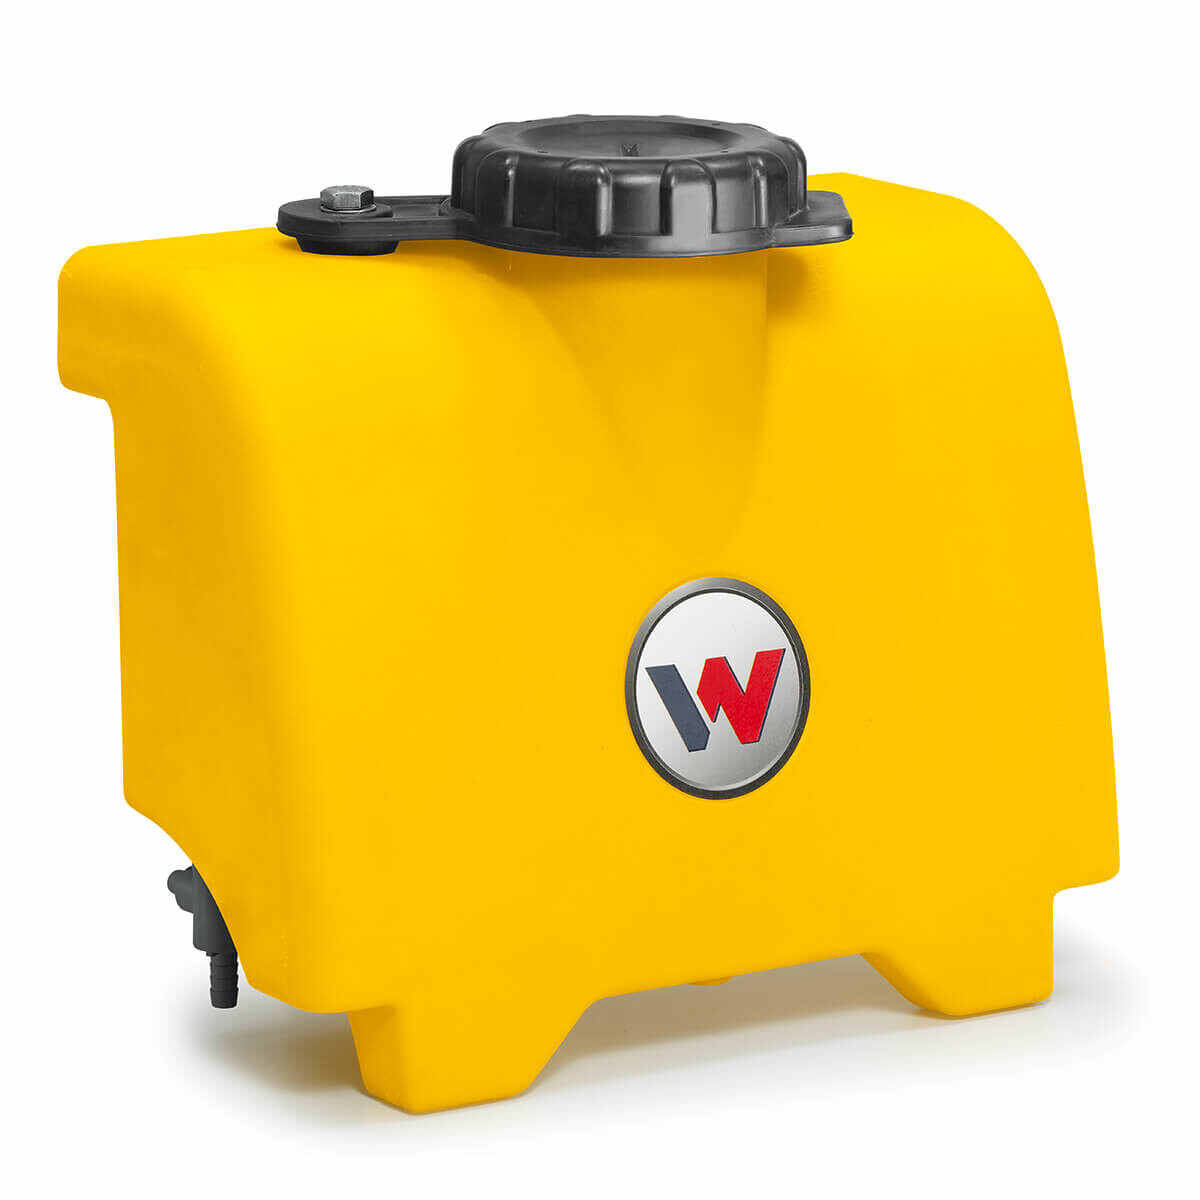 Water tank kit for WP 1540 & WP 1550 premium vibratory plates suitable for hot or cold asphalt applications